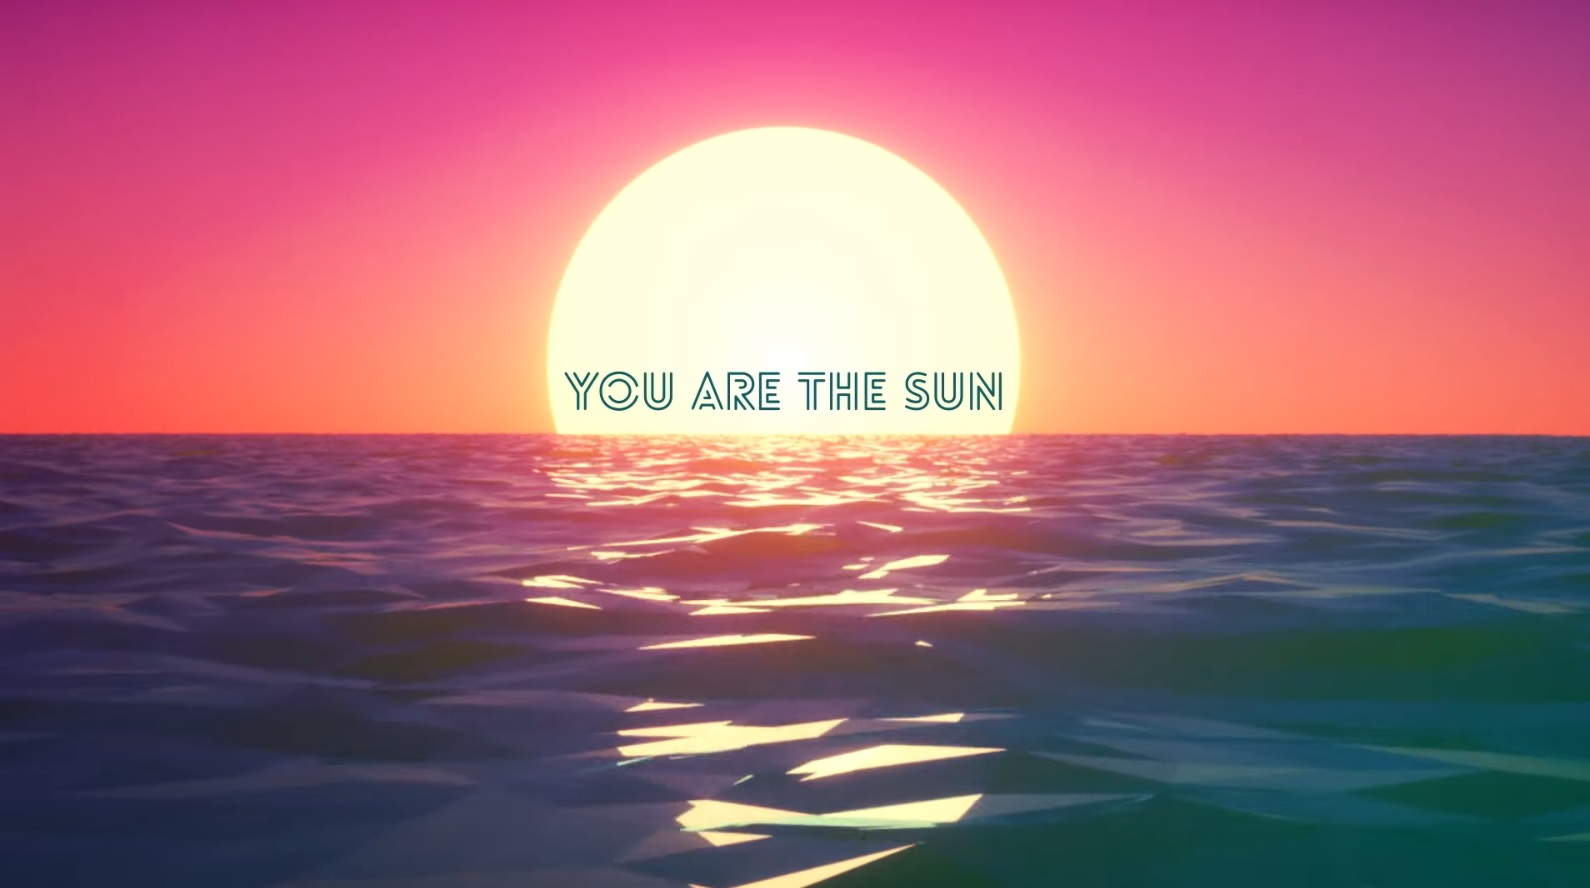 You Are the Sun - Sunset Neon